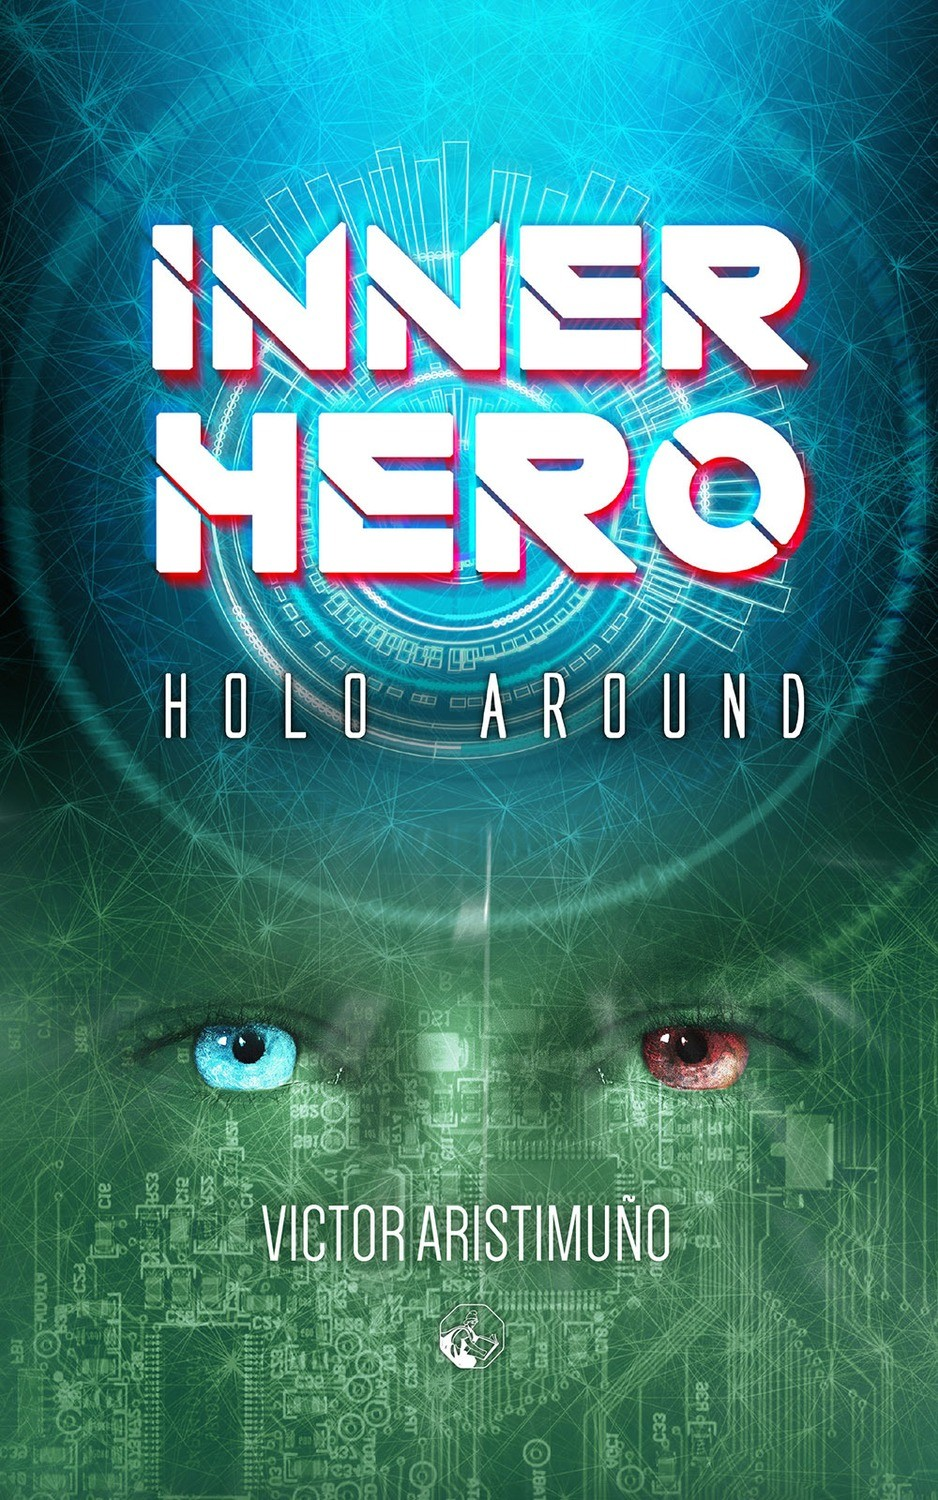 Inner Hero - Holo Around